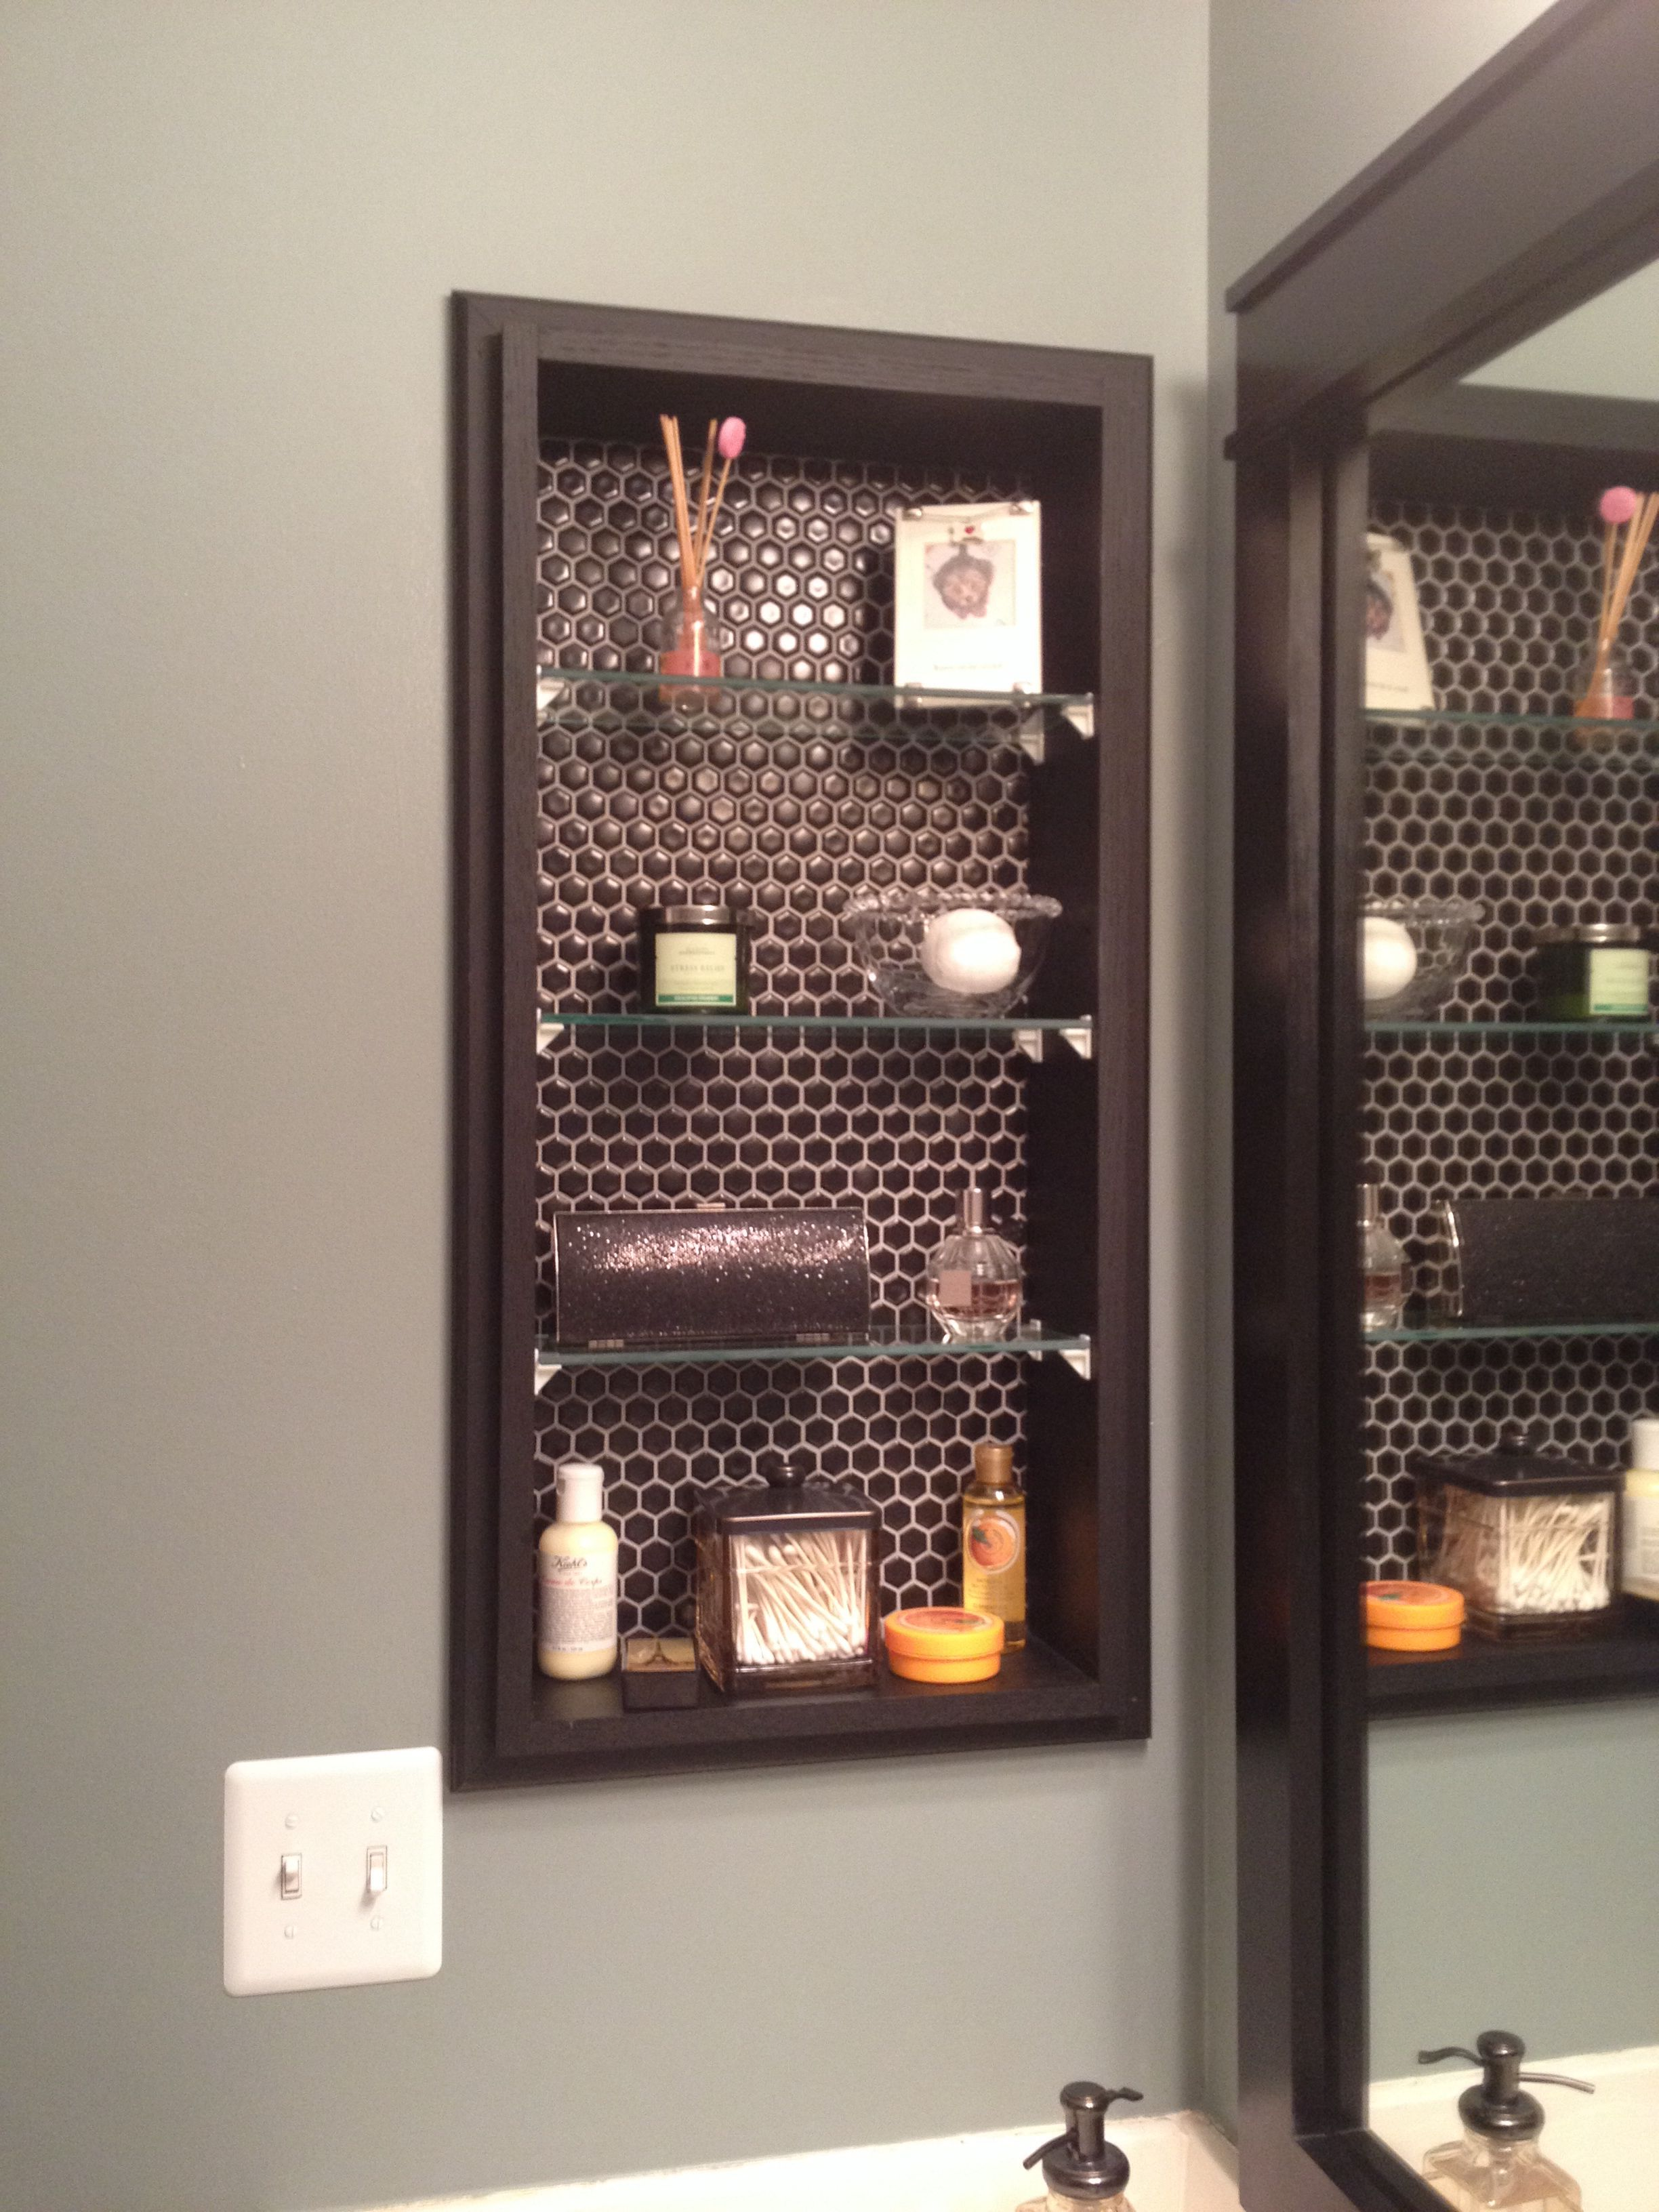 Glass Shelving To Replace Medicine Cabinet Black Hex Tile Backing